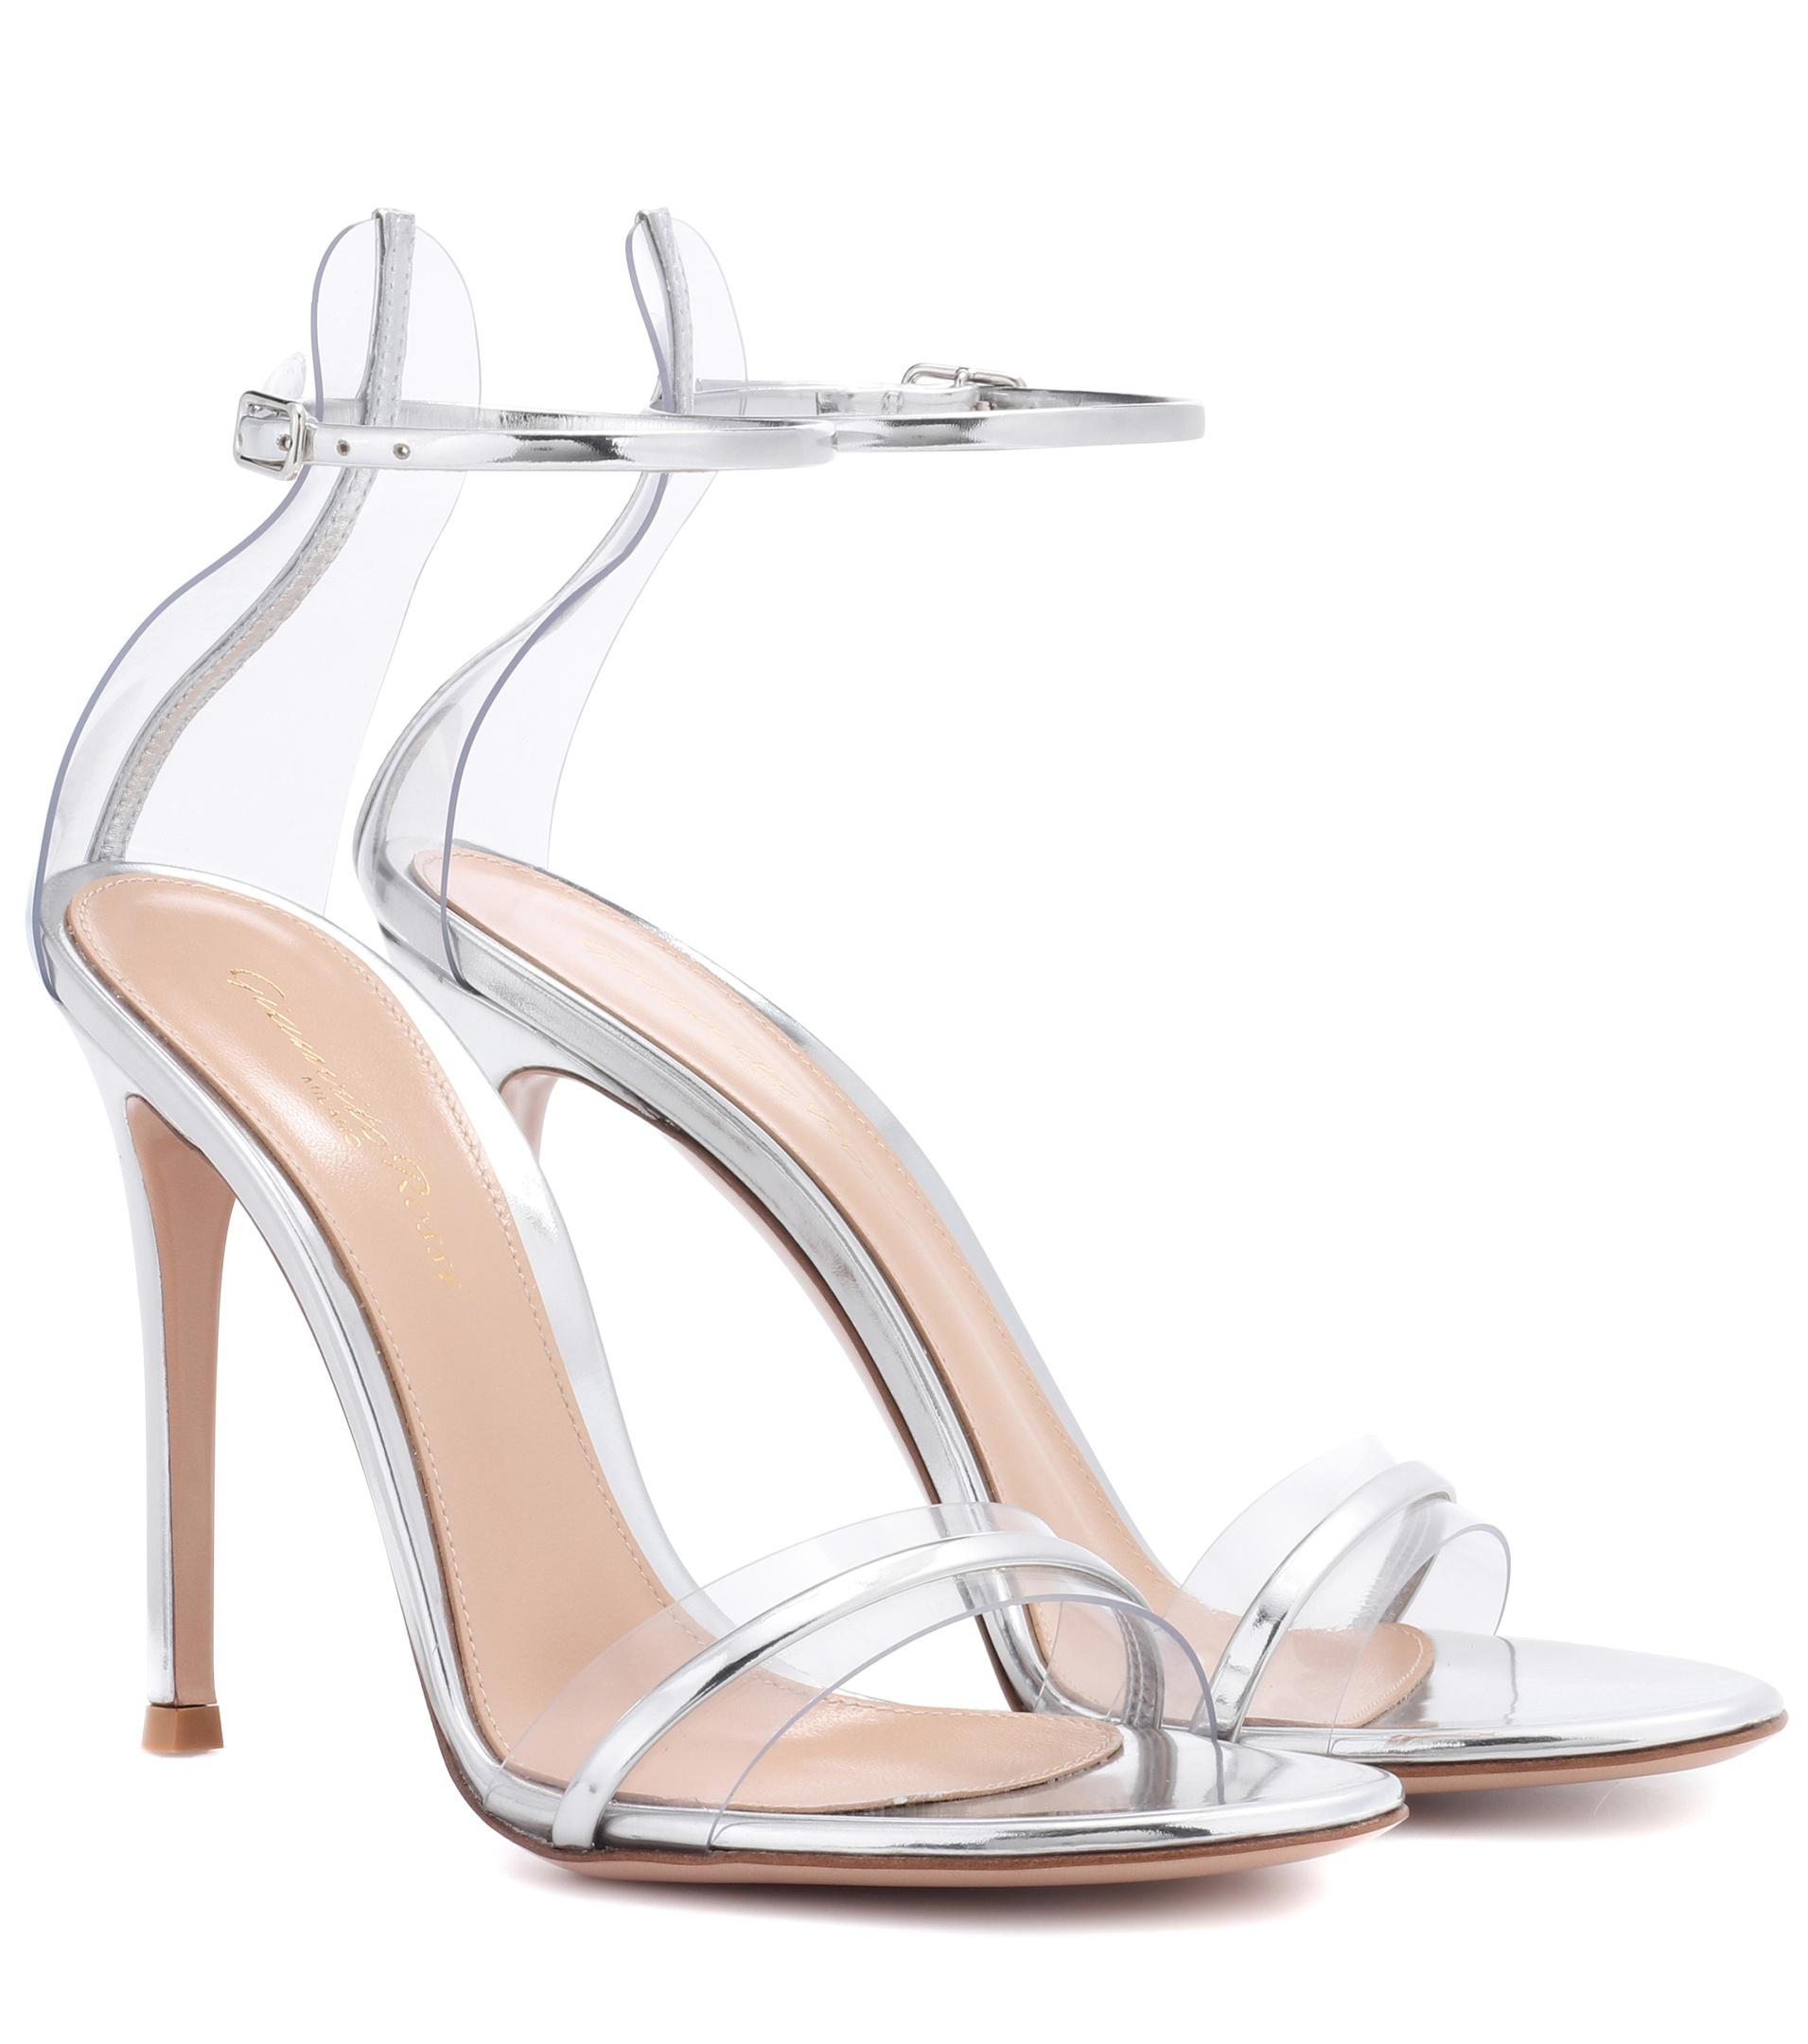 46a09d8c3d3 Lyst - Gianvito Rossi G-string Metallic Leather Sandals in Metallic